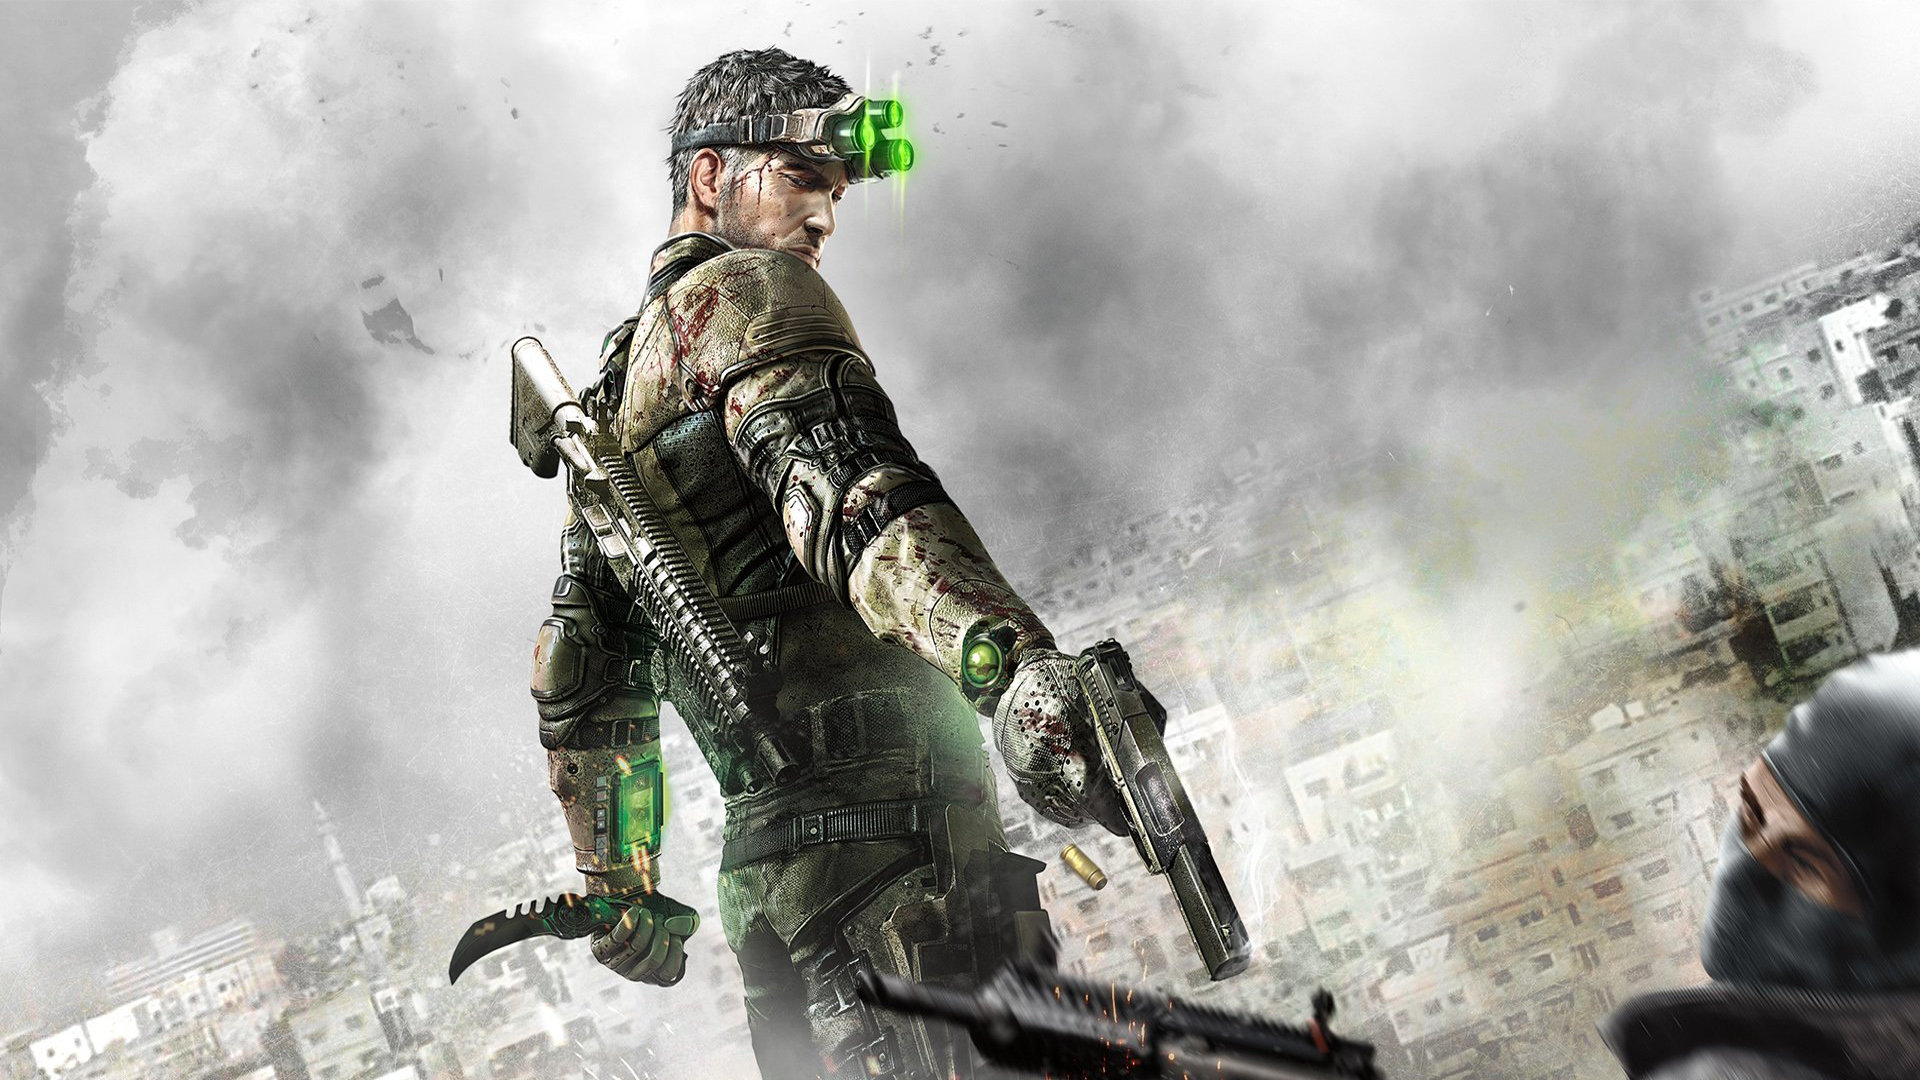 sam fisher wallpapers 1920x1080 full hd (1080p) desktop backgrounds